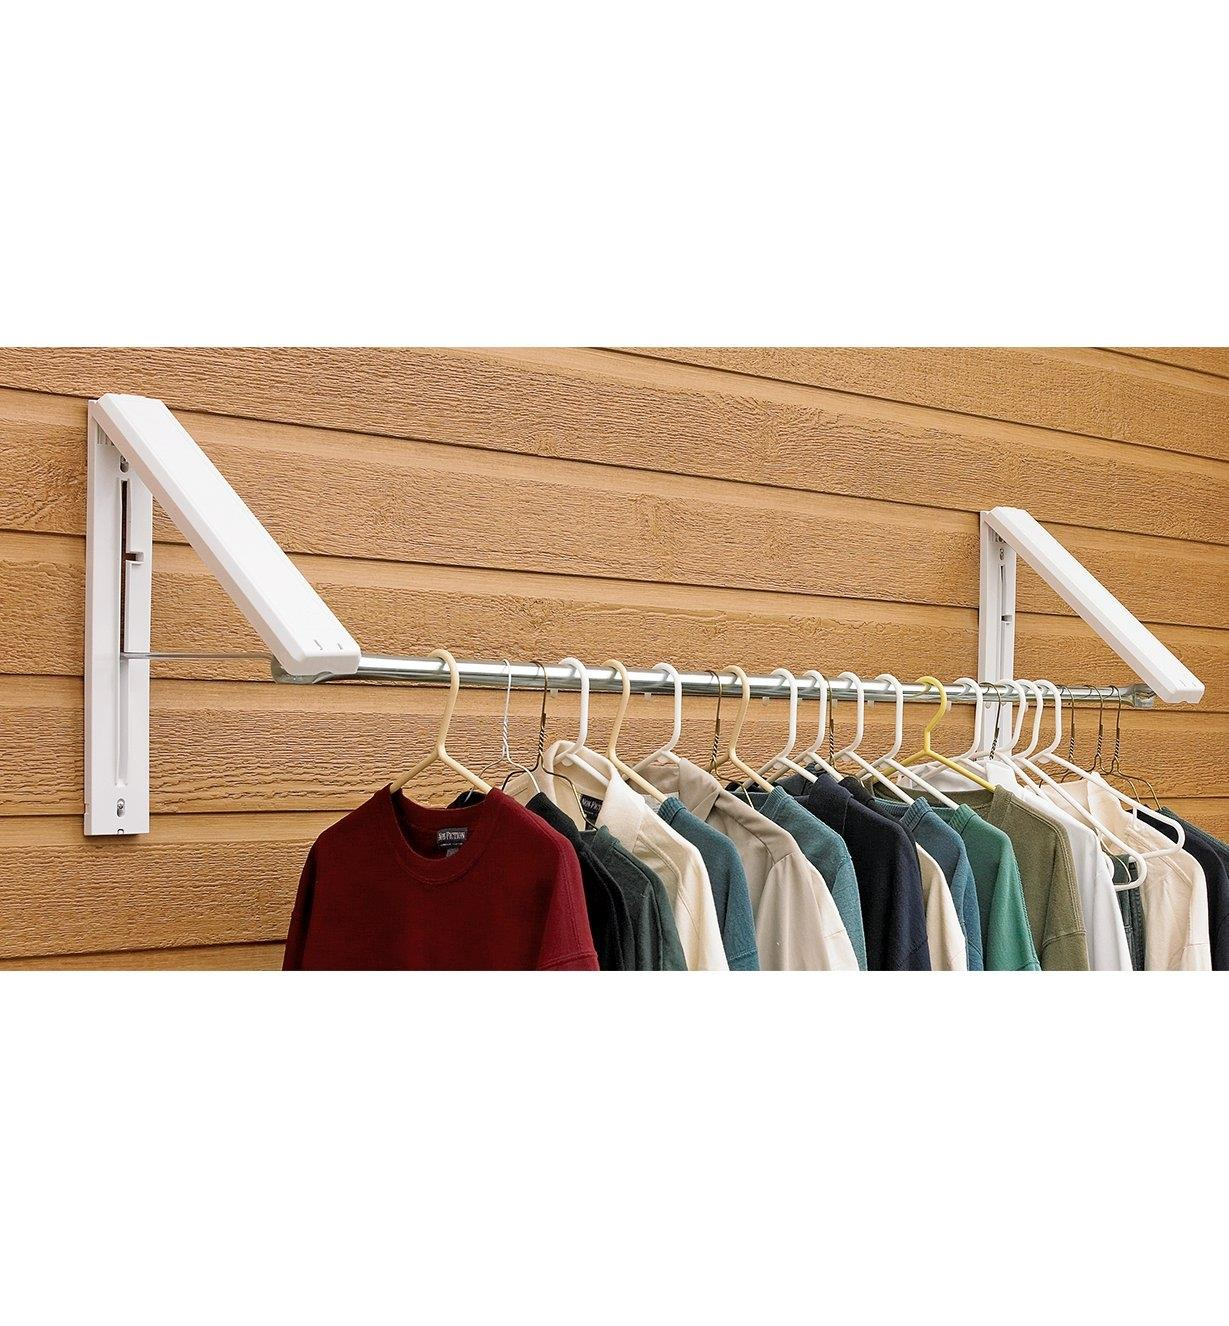 Mounted 3' to 5' rack folded out, holding various clothing on hangers